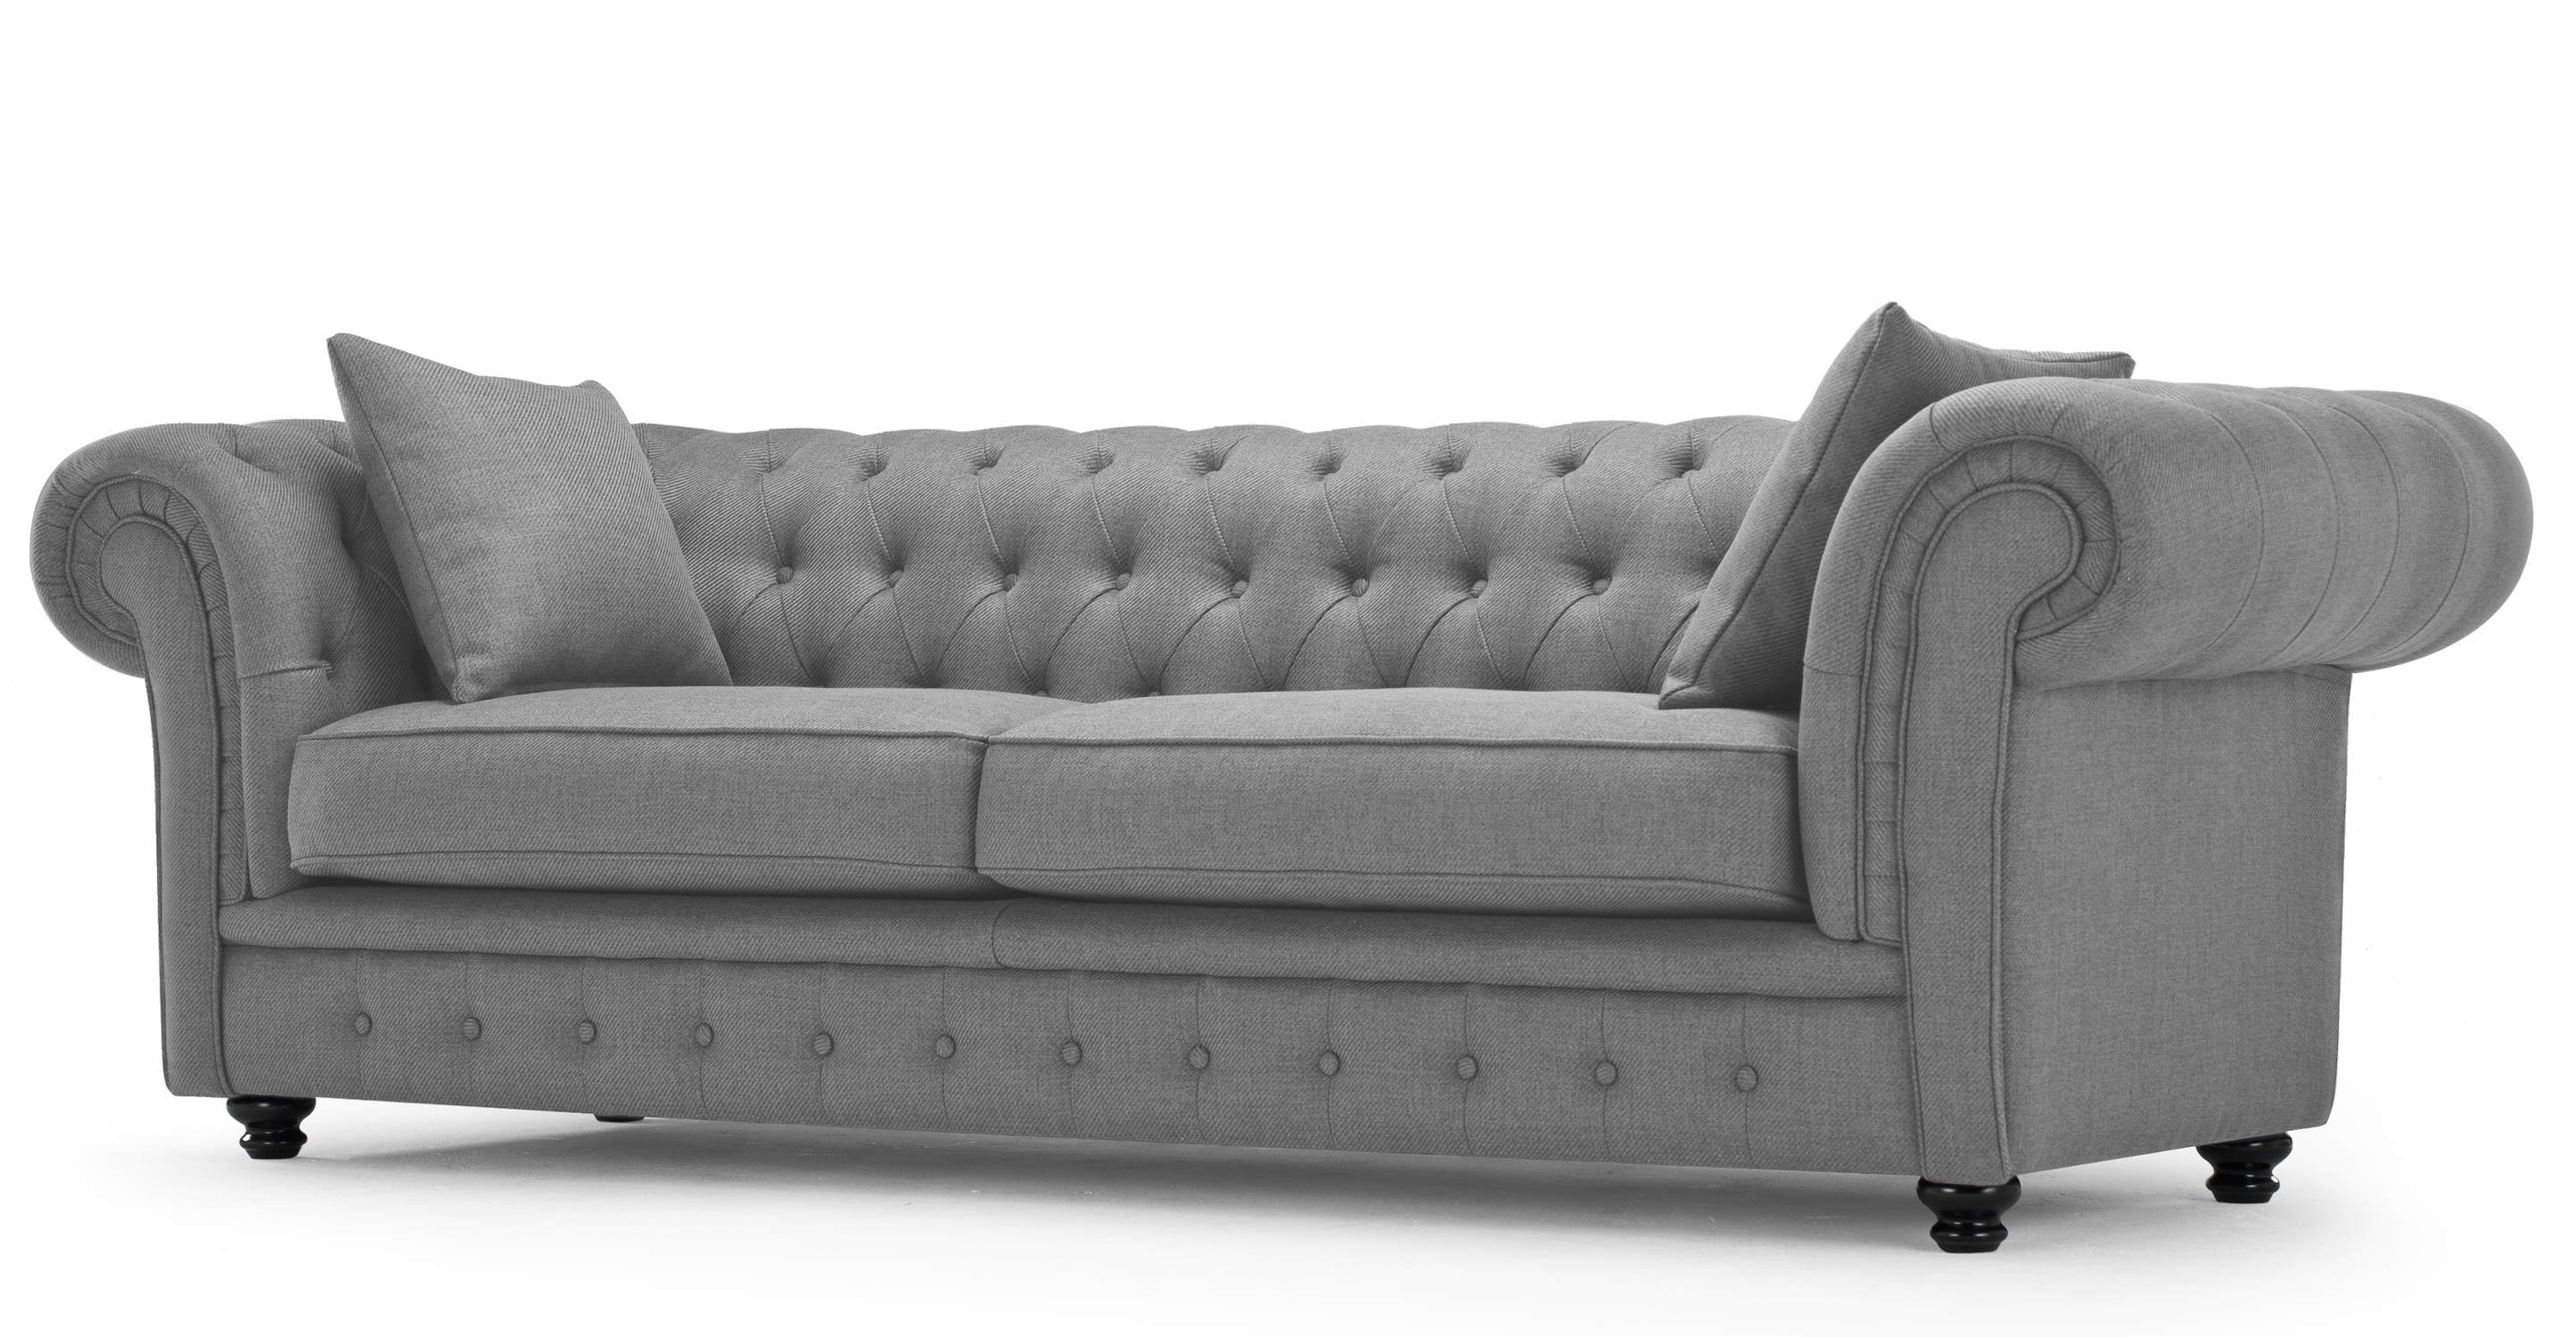 ☆▻ Sofa : Wonderful Chesterfield Tufted Sofa Modern Couches On Inside Affordable Tufted Sofas (Image 1 of 20)